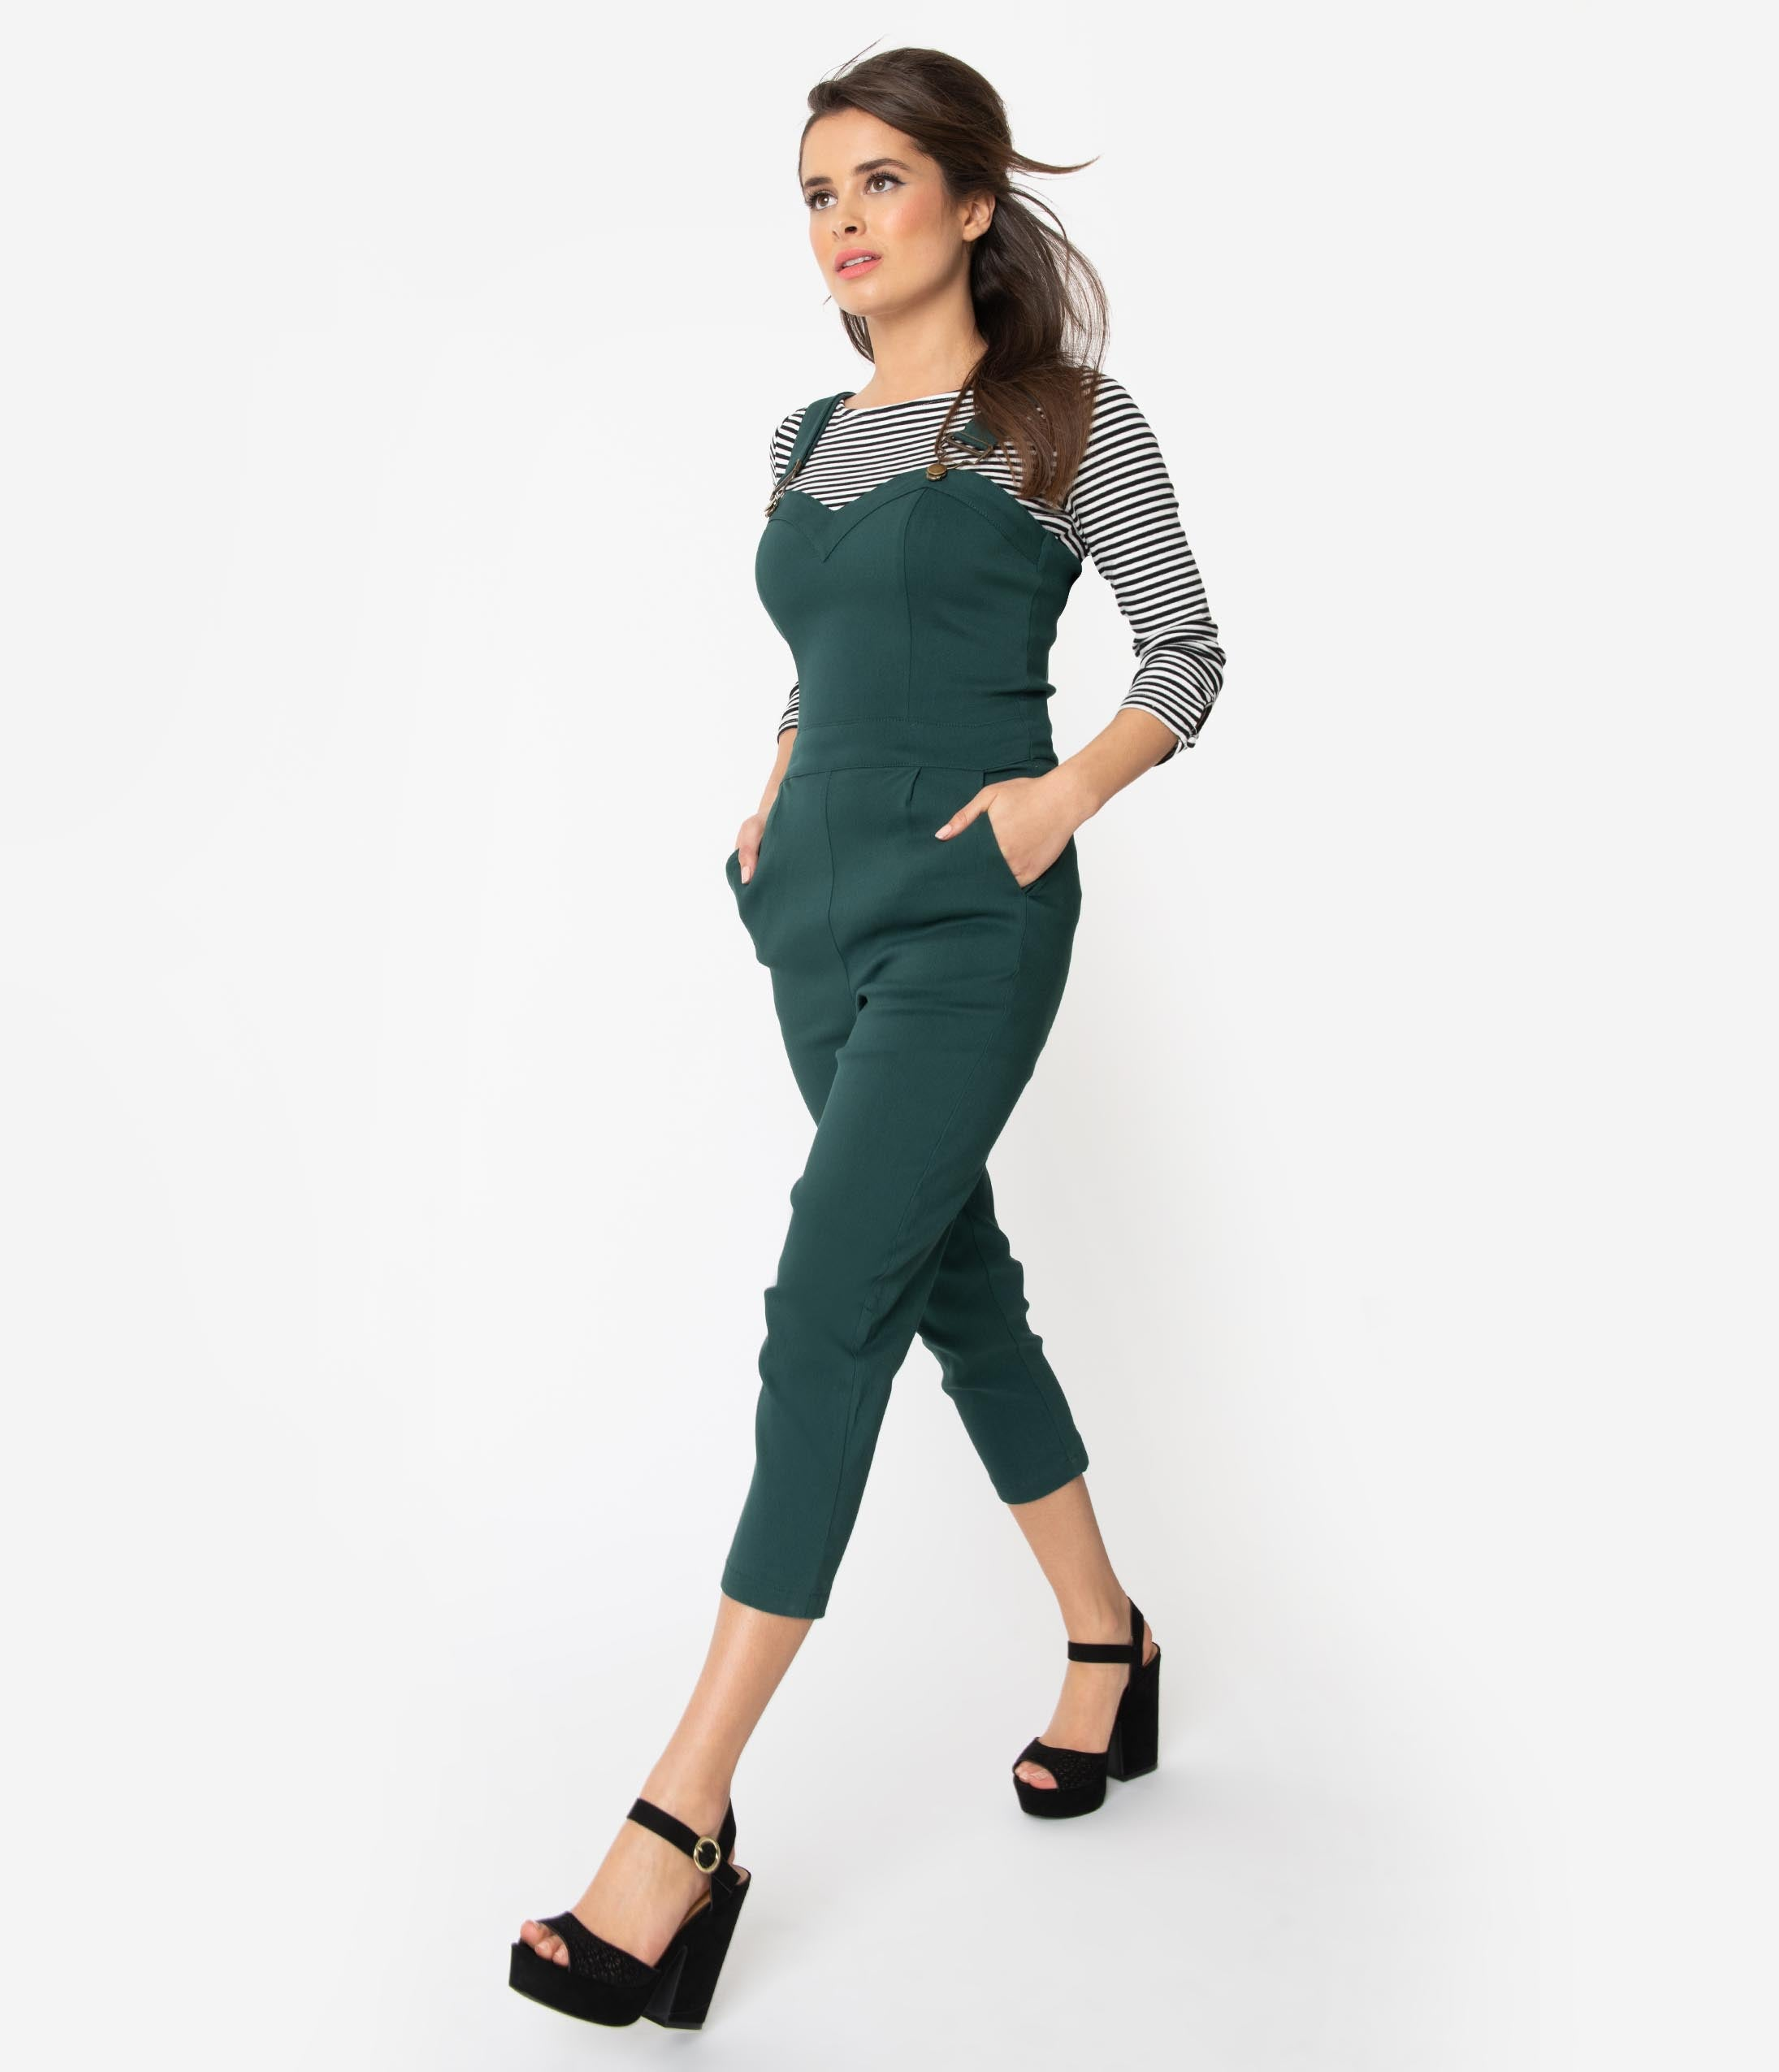 cca632d8e61c Voodoo Vixen Emerald Green Fitted Capri Connie Overalls